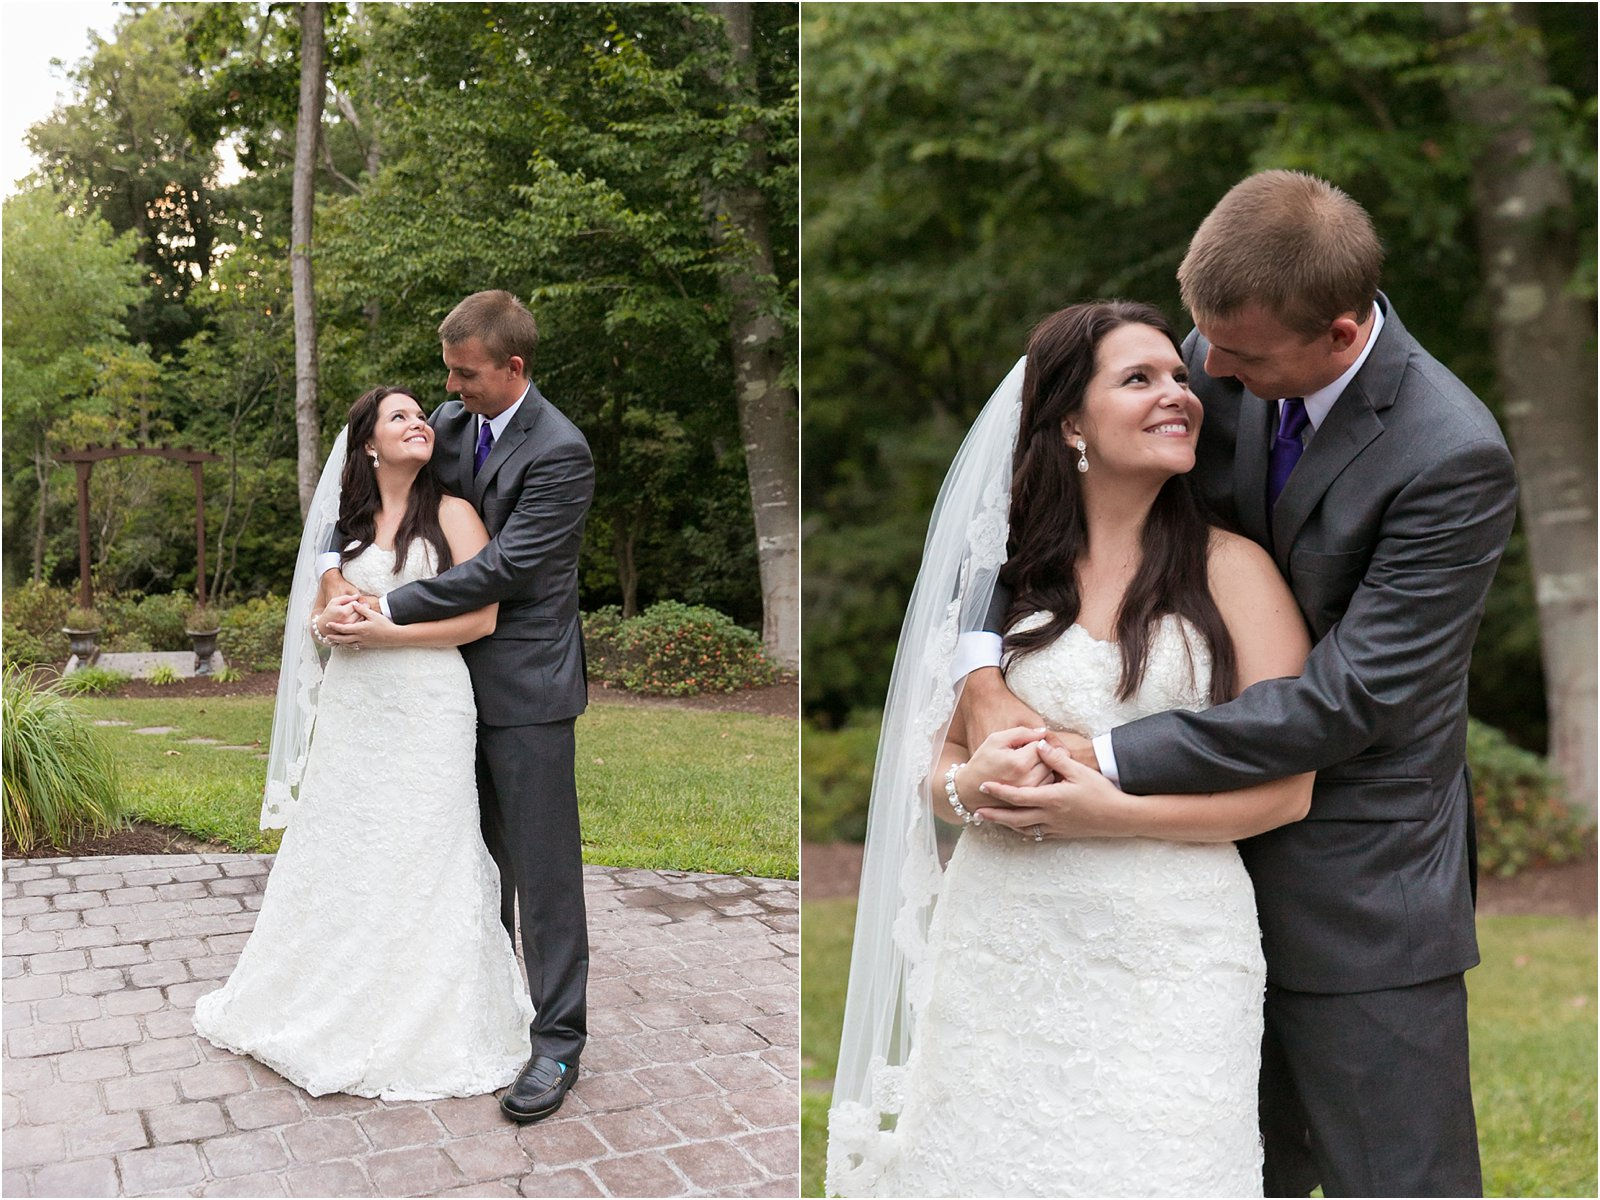 jessica_ryan_photography_bride_groom_suffolk_wedding_virginia_wedding_photography_hampton_roads_0260